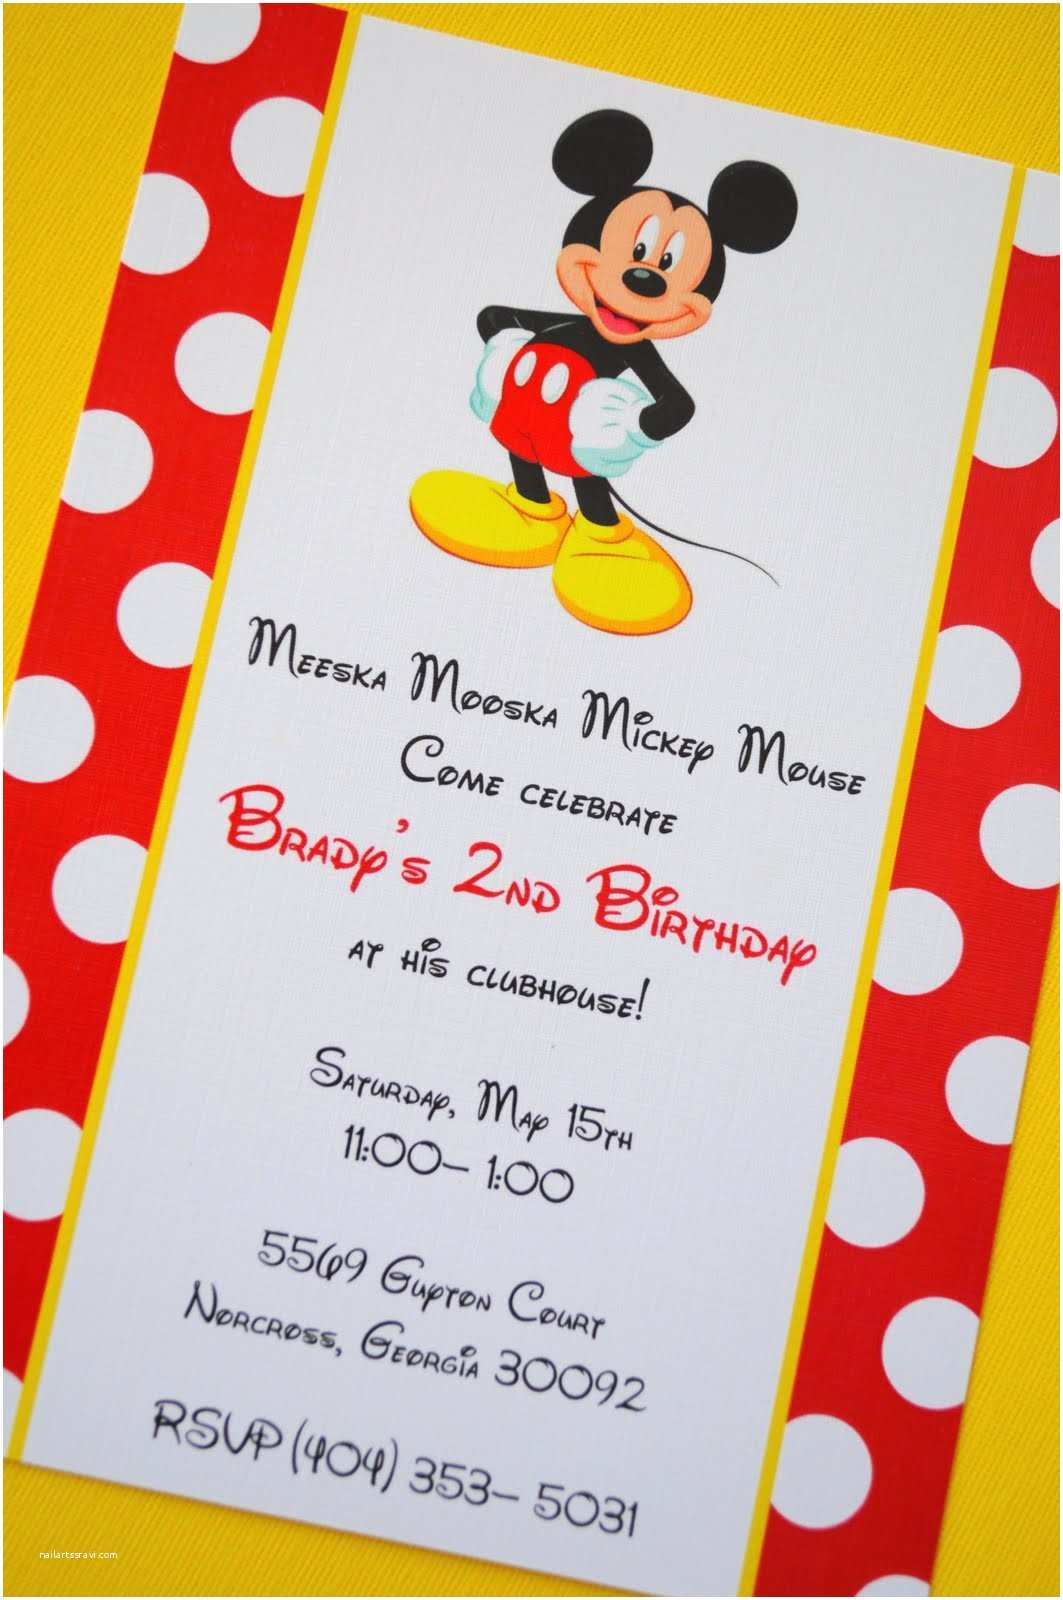 Personalized Mickey Mouse Birthday Invitations Joel S 3rd B Day Time to Mickey Mousekercise On